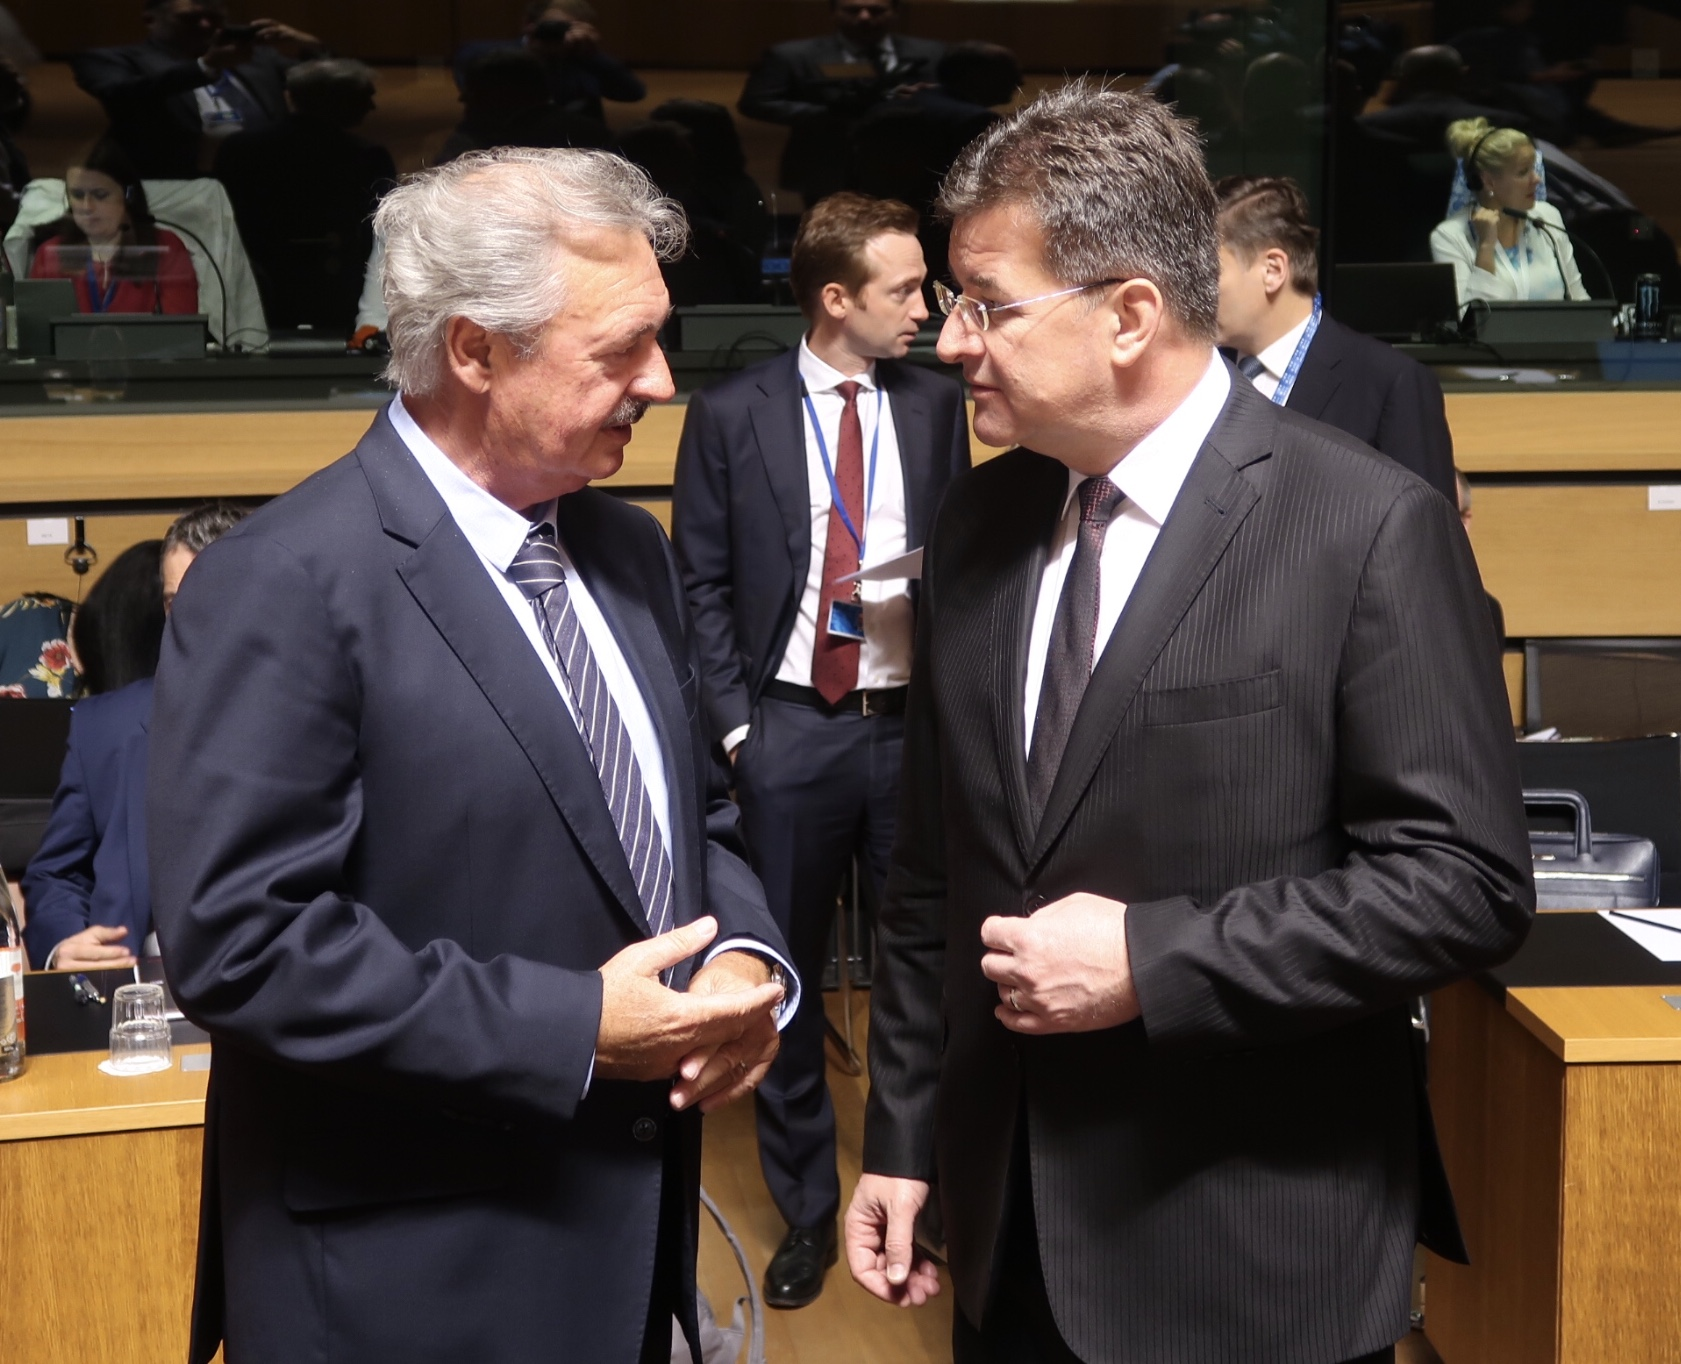 Miroslav Lajčák Takes Part in the Meeting of the EU Foreign Affairs Council in Luxembourg